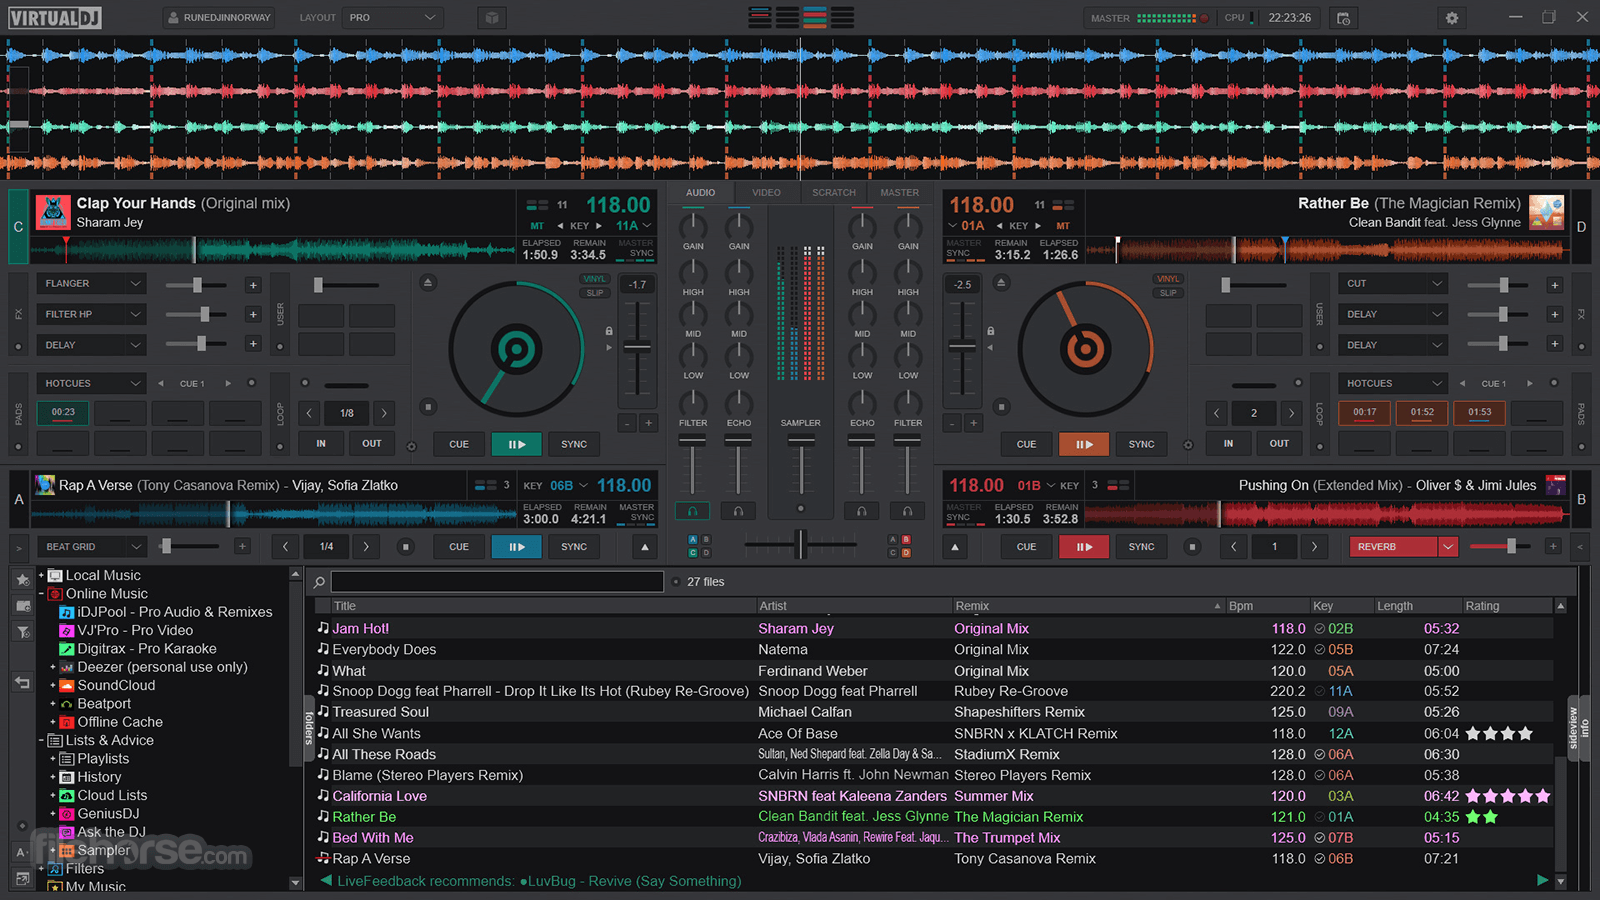 Virtual DJ 2021 Build 6334 Screenshot 1